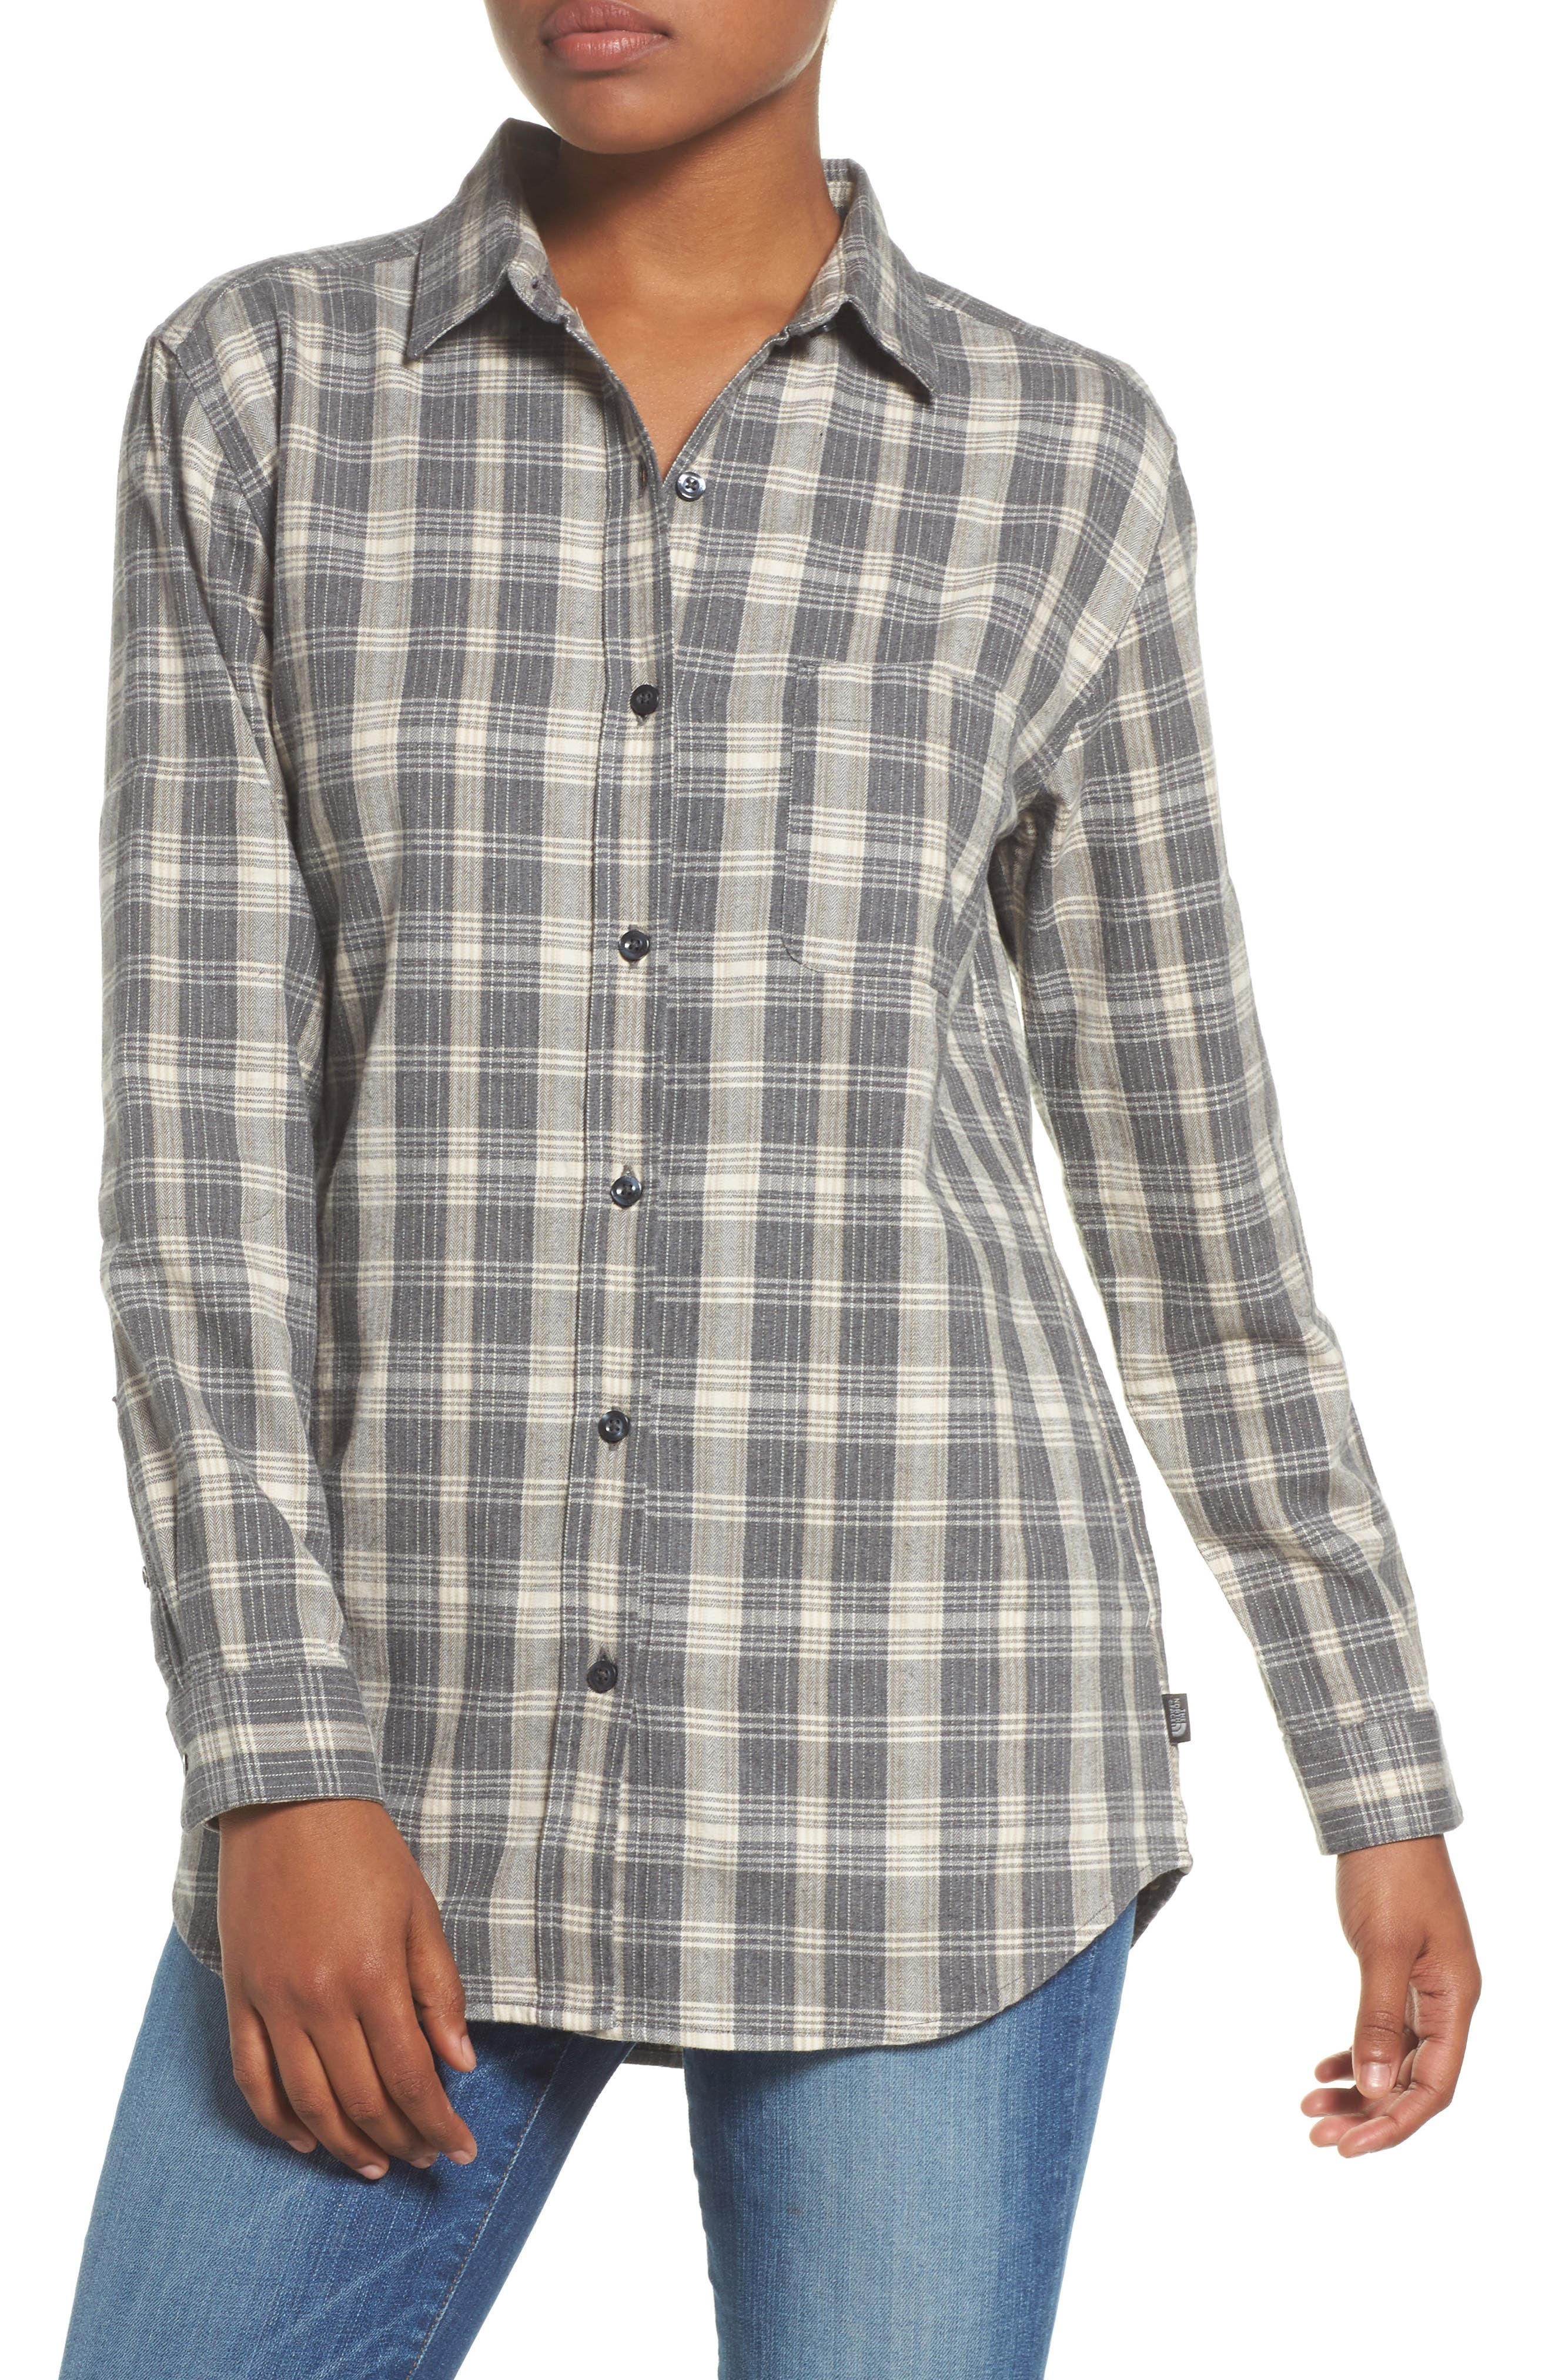 Alternate Image 1 Selected - The North Face Boyfriend Shirt